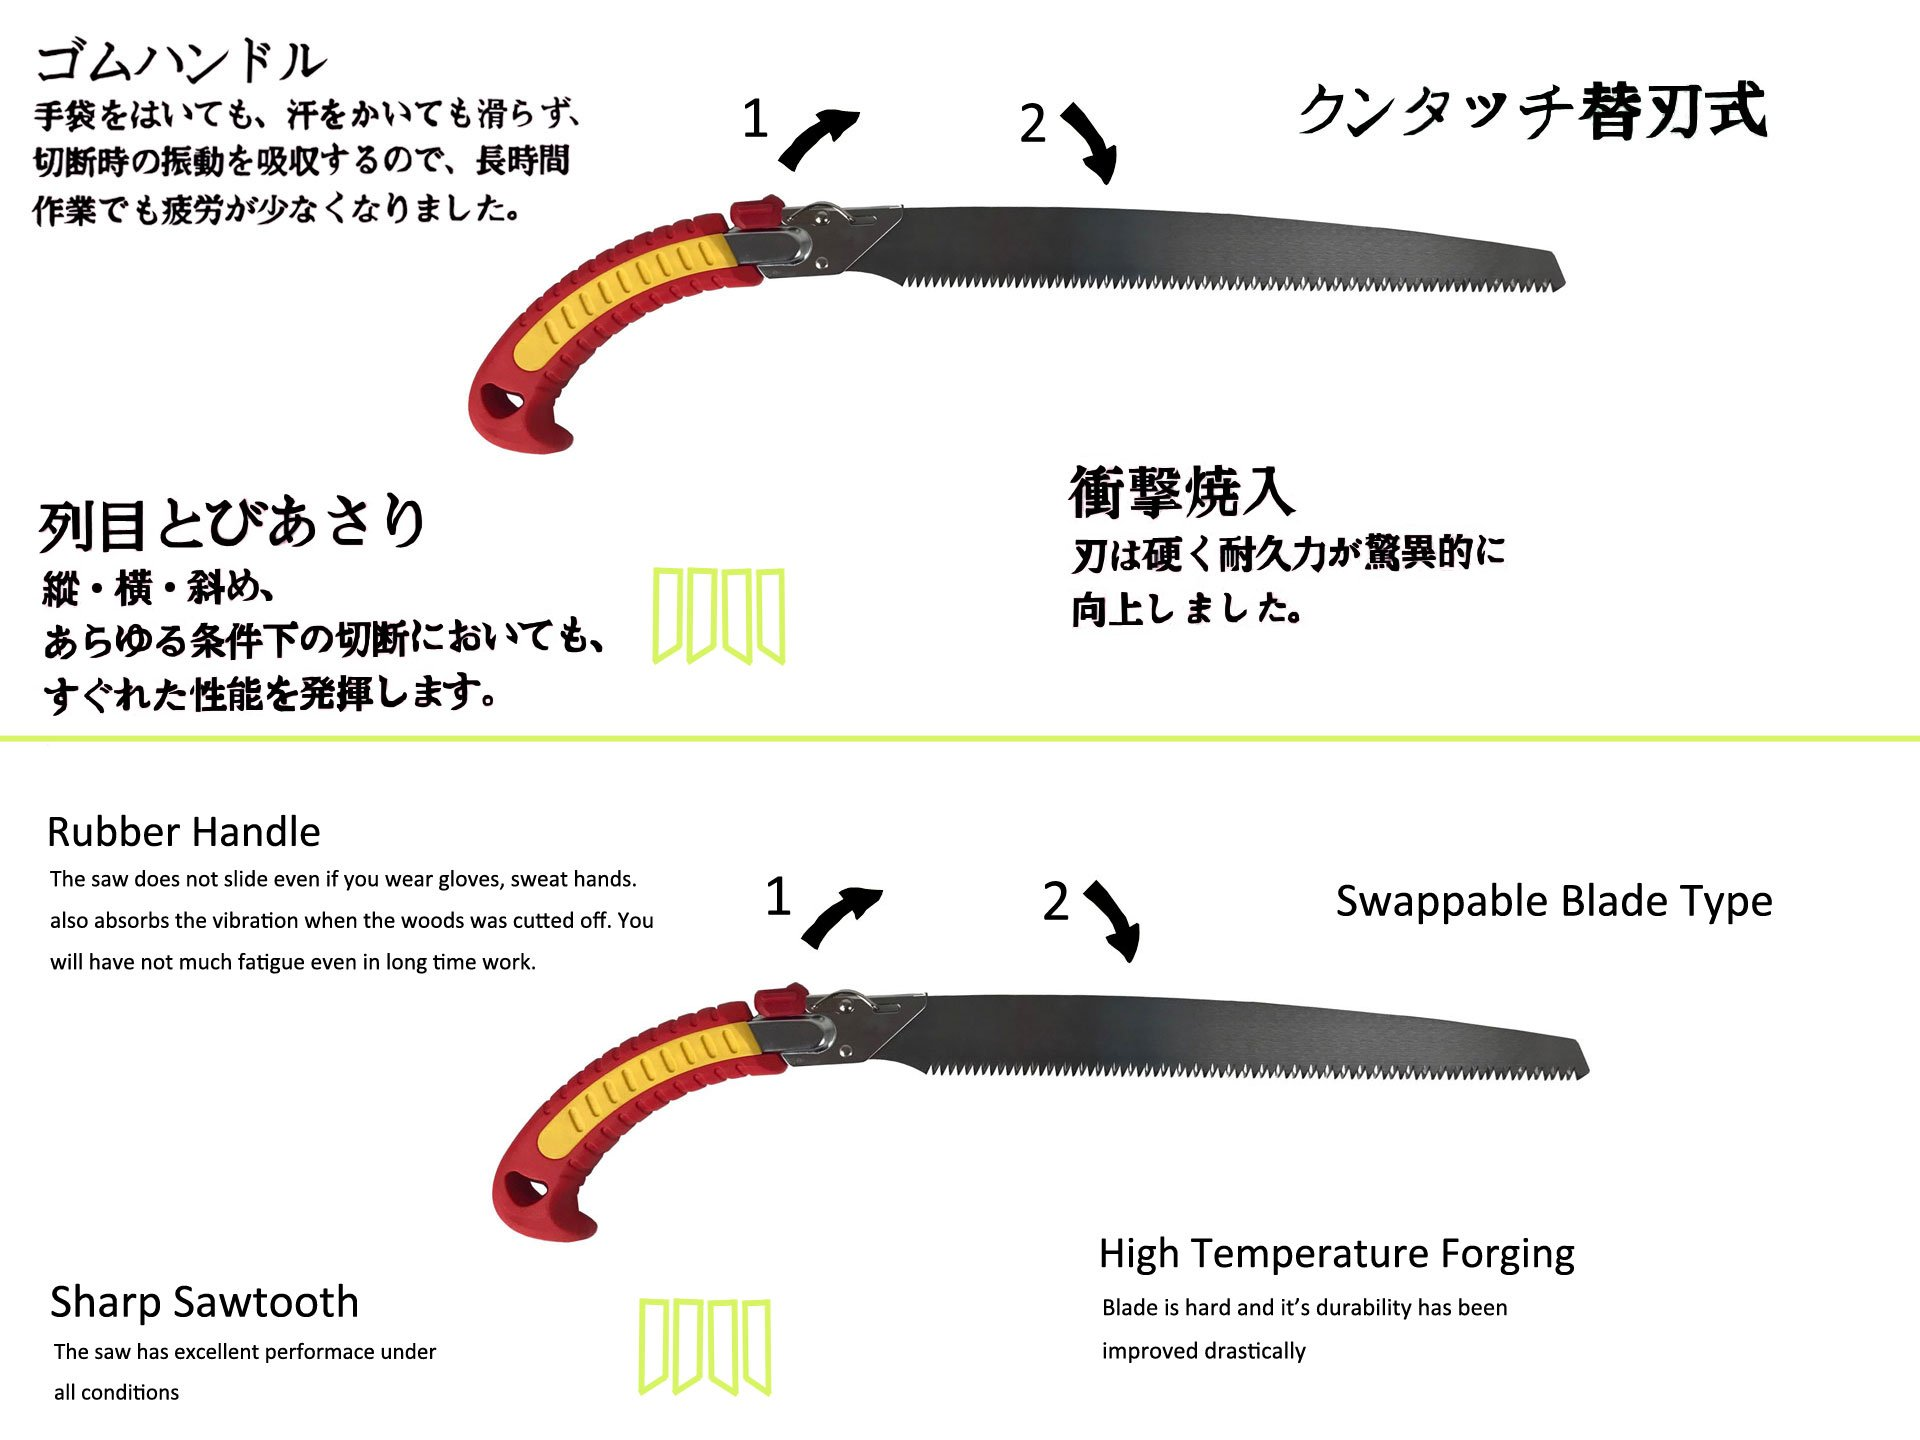 Geelife Landscaping Hand Pruning Saw Rugged Razor Blade Hand Saw with Sheath Professional Pruning Saws Garden Tool for Trim Tree Branches by Geelife (Image #4)